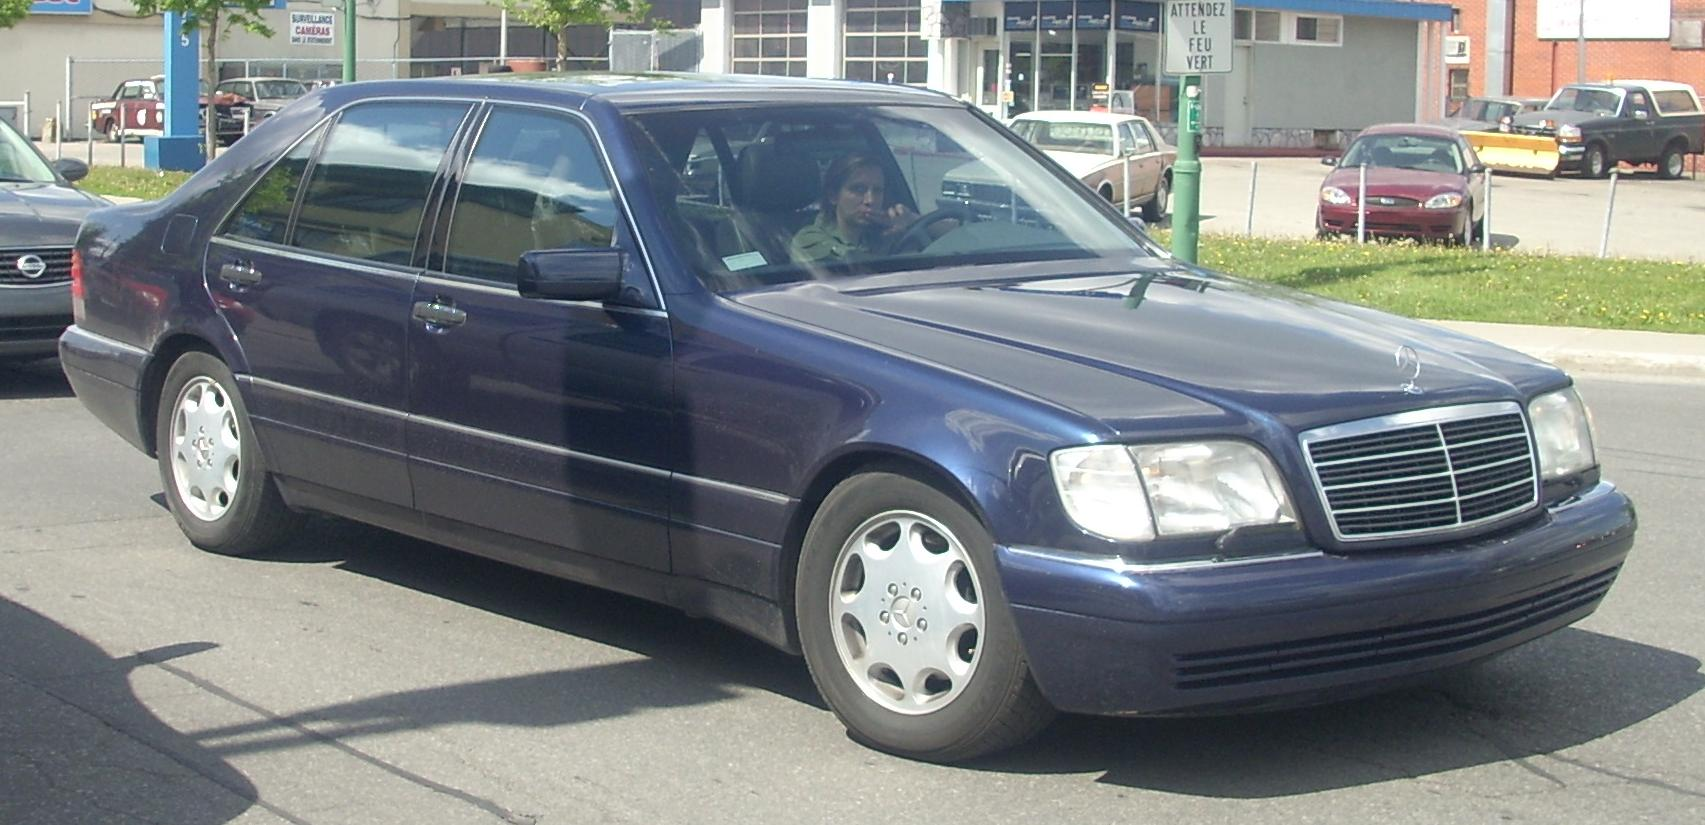 1994 Mercedes S-klasse (w140) – pictures, information and